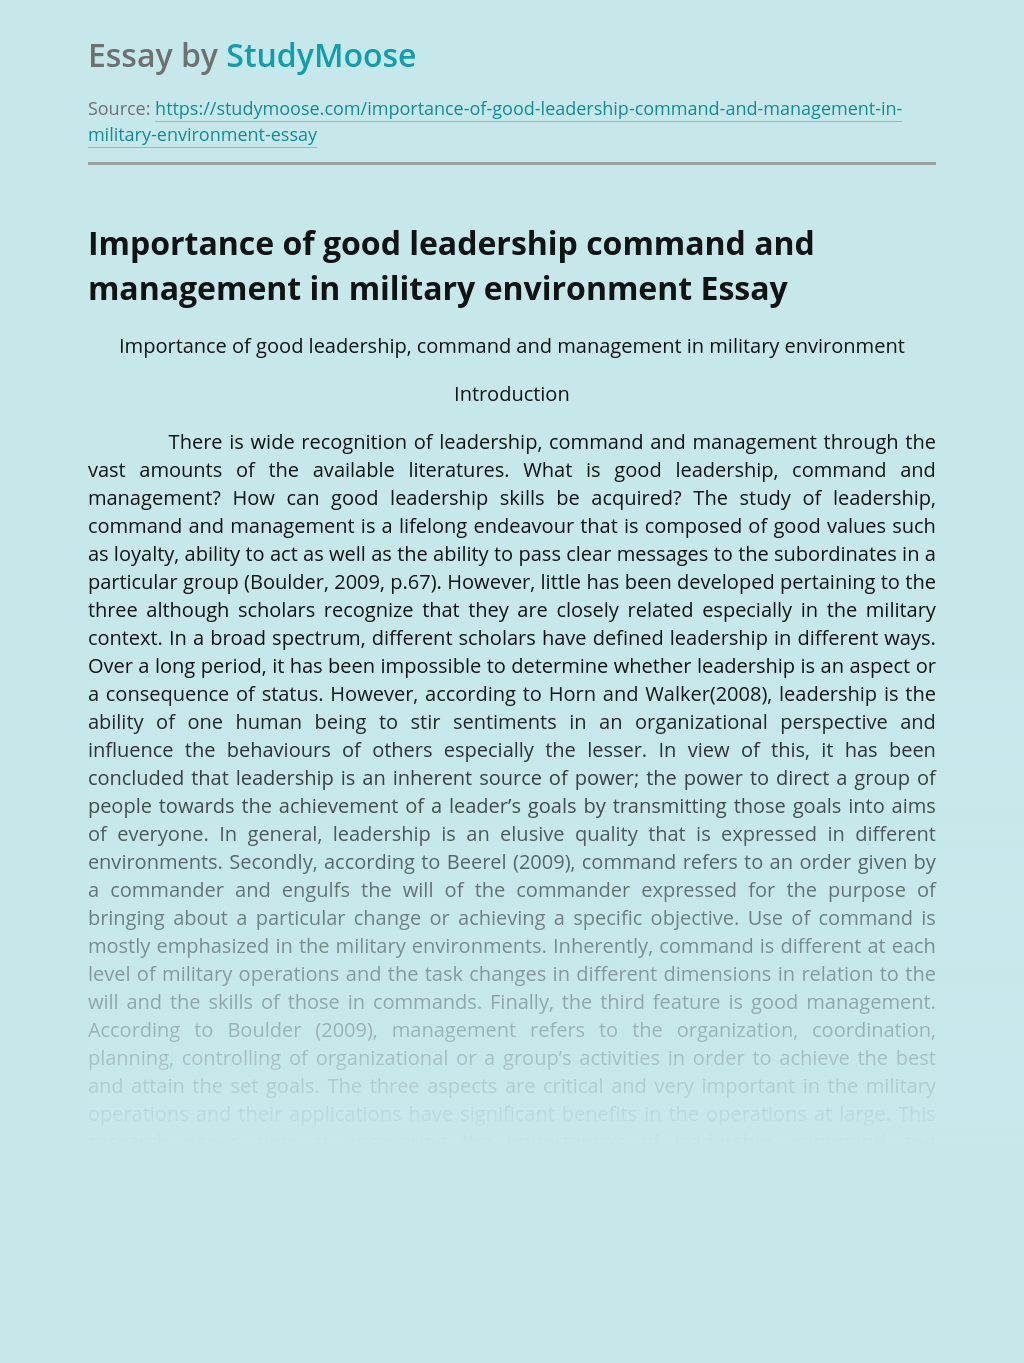 Importance of good leadership command and management in military environment